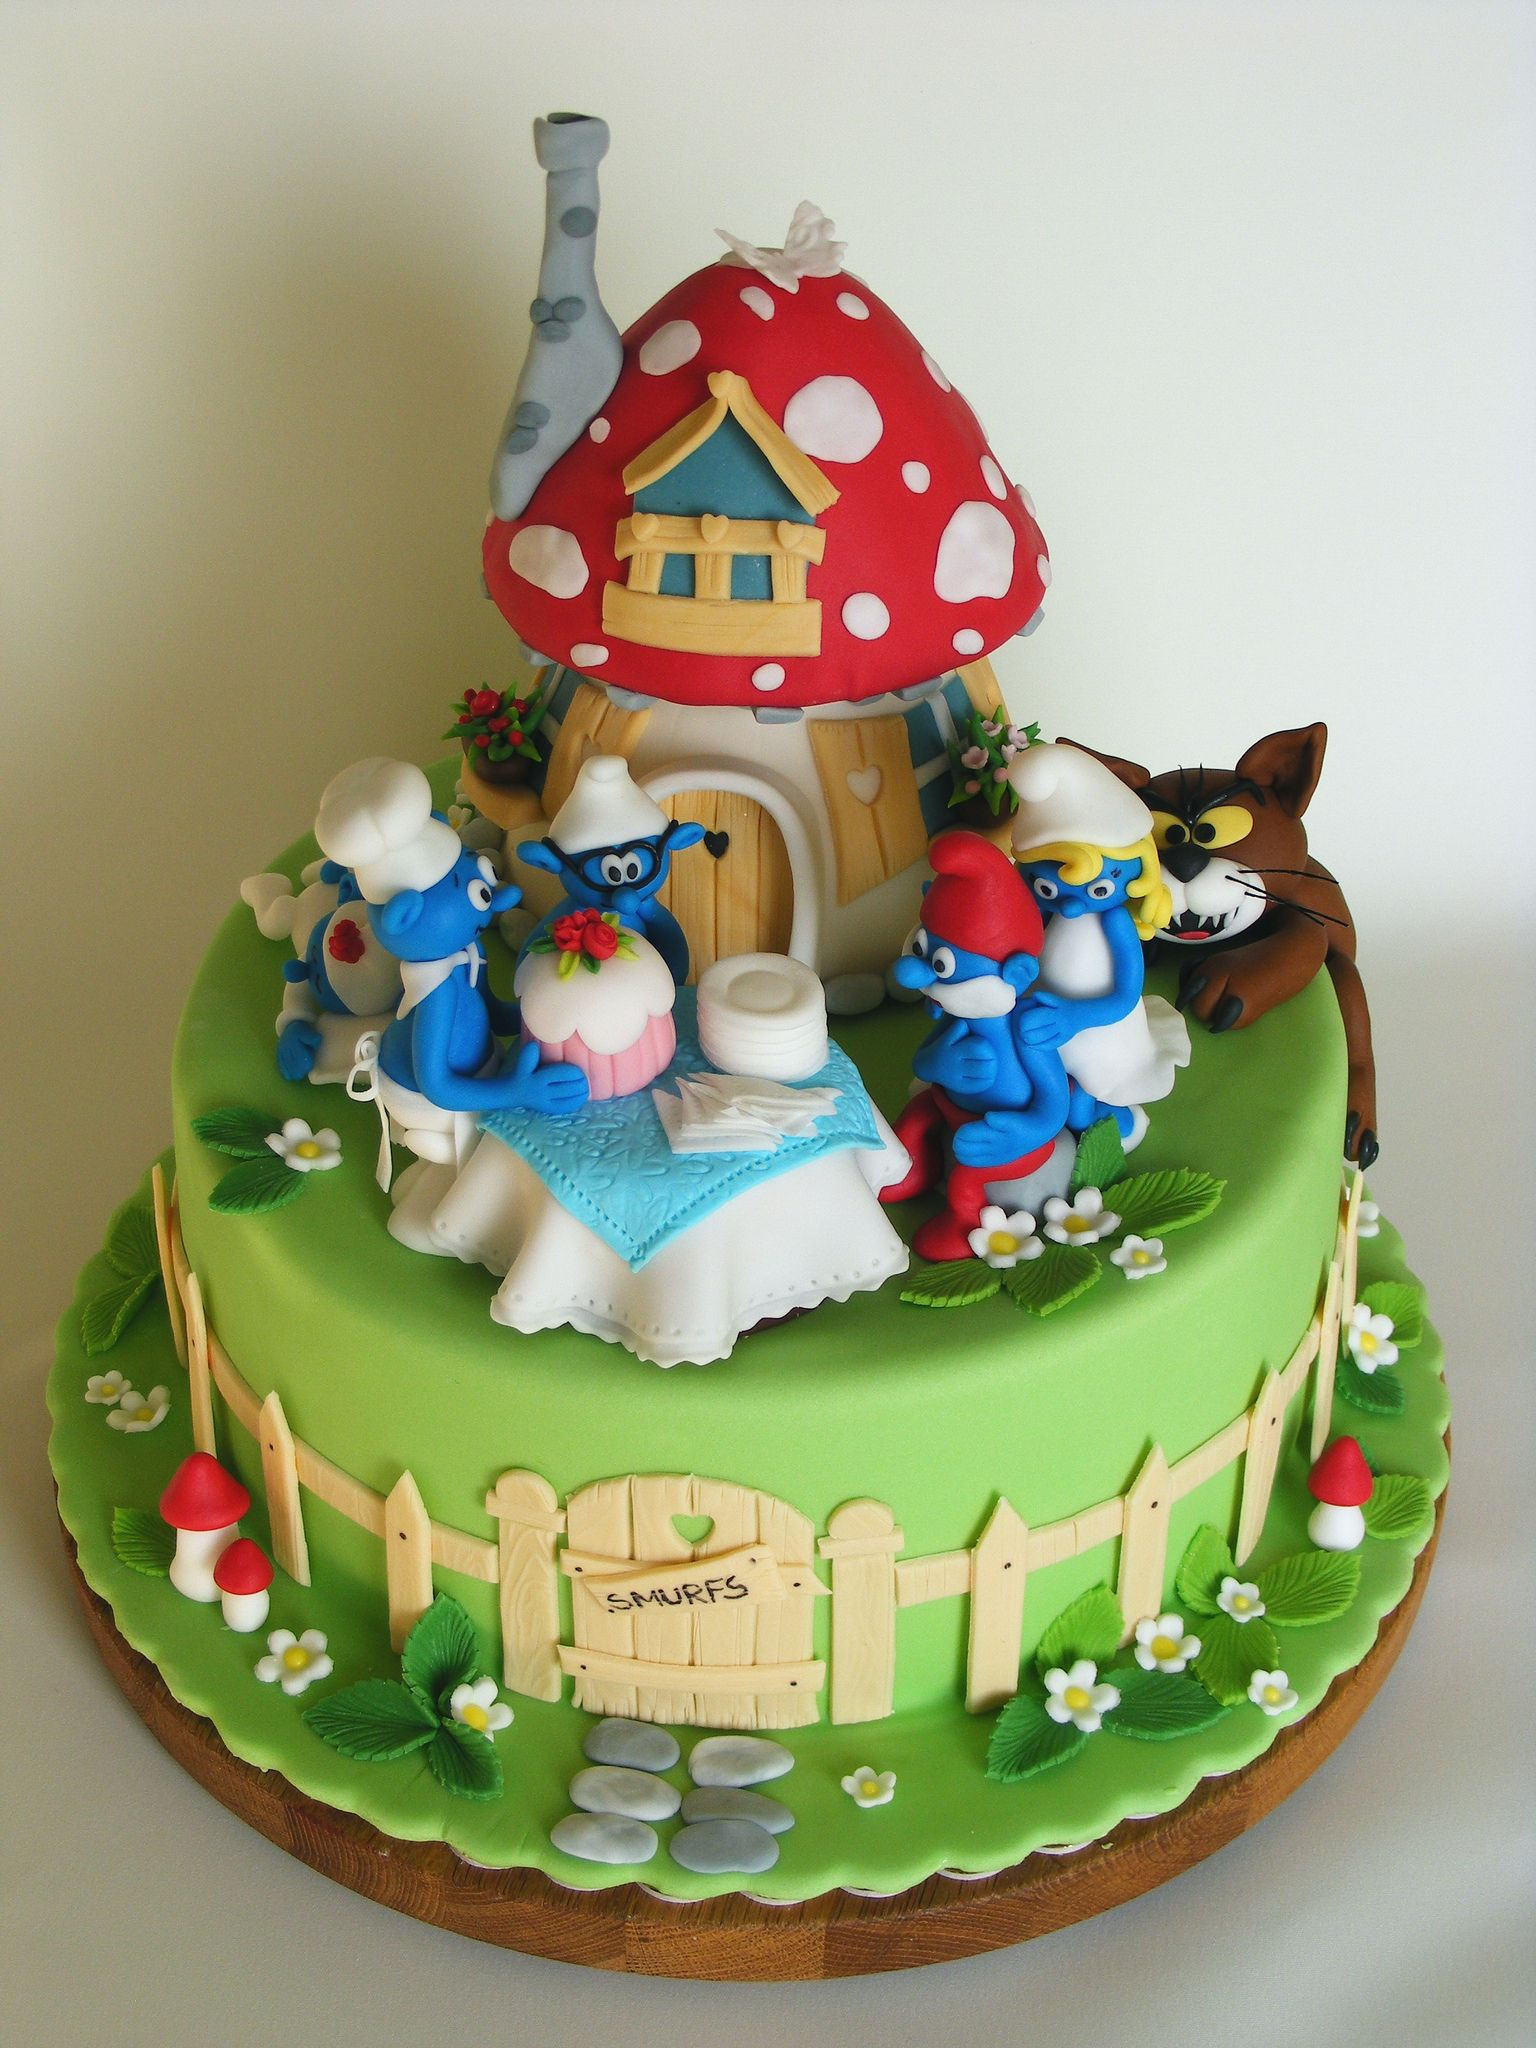 "https://flic.kr/p/dybkLt | Smurfs cake | Happy 3 Bday, Iani!!! Историята на <a href=""http://bubolinkata.blogspot.com/2012/12/blog-post.html"" rel=""nofollow"">bubolinkata.blogspot.com/2012/12/blog-post.html</a>"